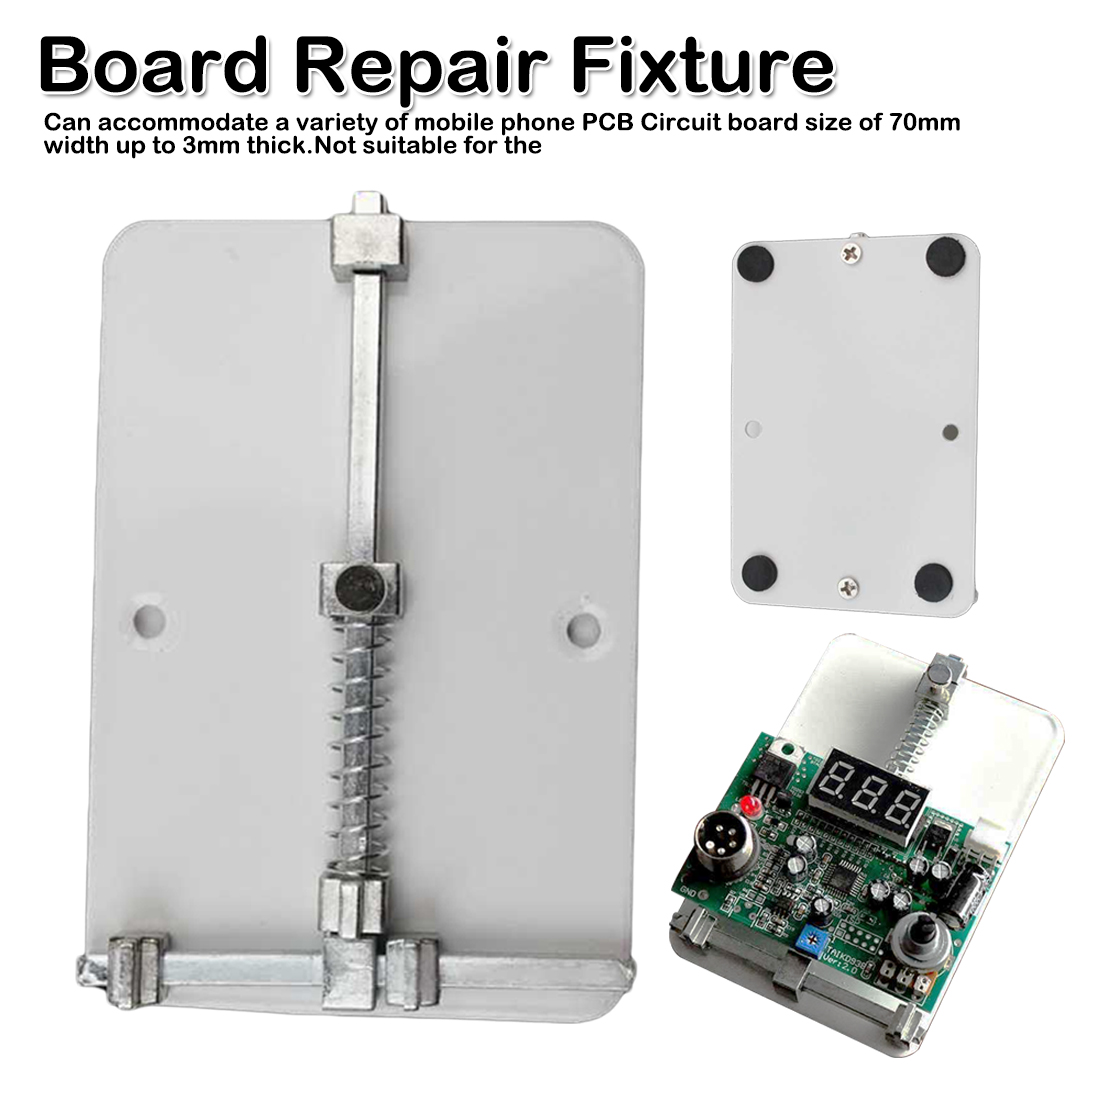 <font><b>Mobile</b></font> <font><b>Phone</b></font> <font><b>Board</b></font> <font><b>Repair</b></font> <font><b>Fixture</b></font> PCB Holder Work Station Platform Fixed Support Clamp Steel PCB <font><b>Board</b></font> Soldering <font><b>Repair</b></font> Holder image